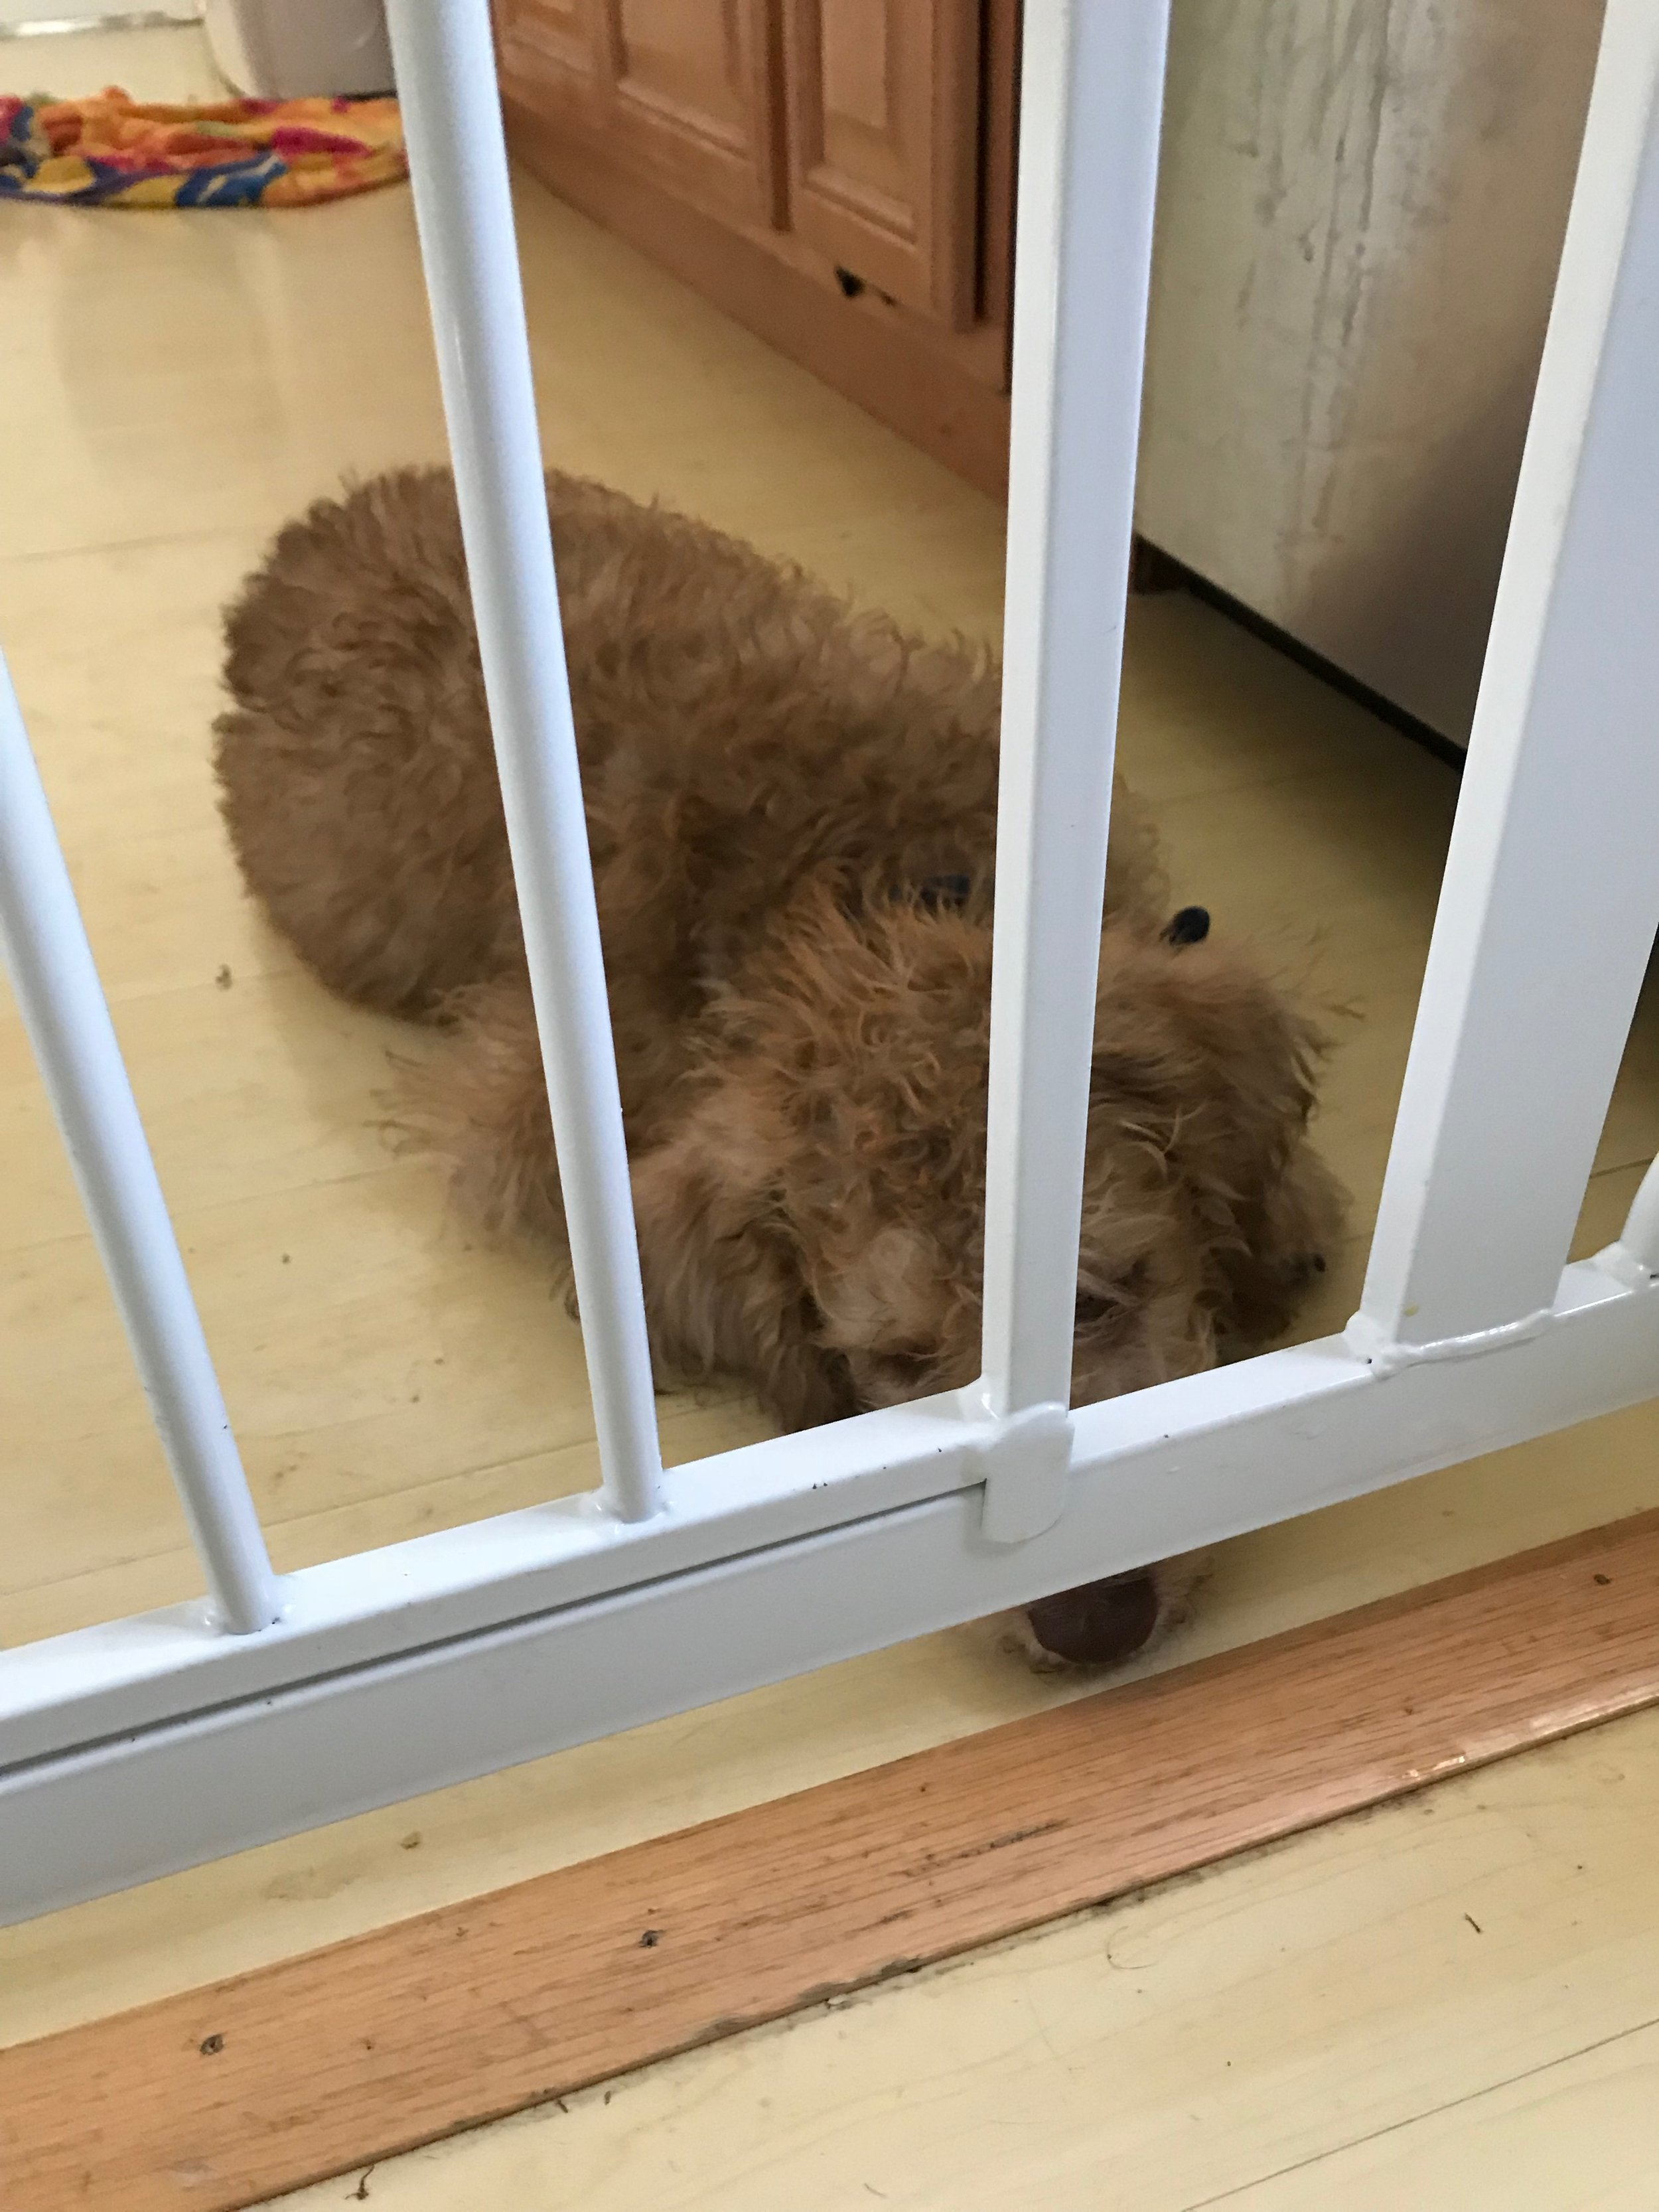 Step 2: Wait for the dog or puppy to go through the self-soothing process until they are completely settled down, and then open the gate to both release them and reinforce the calming process.